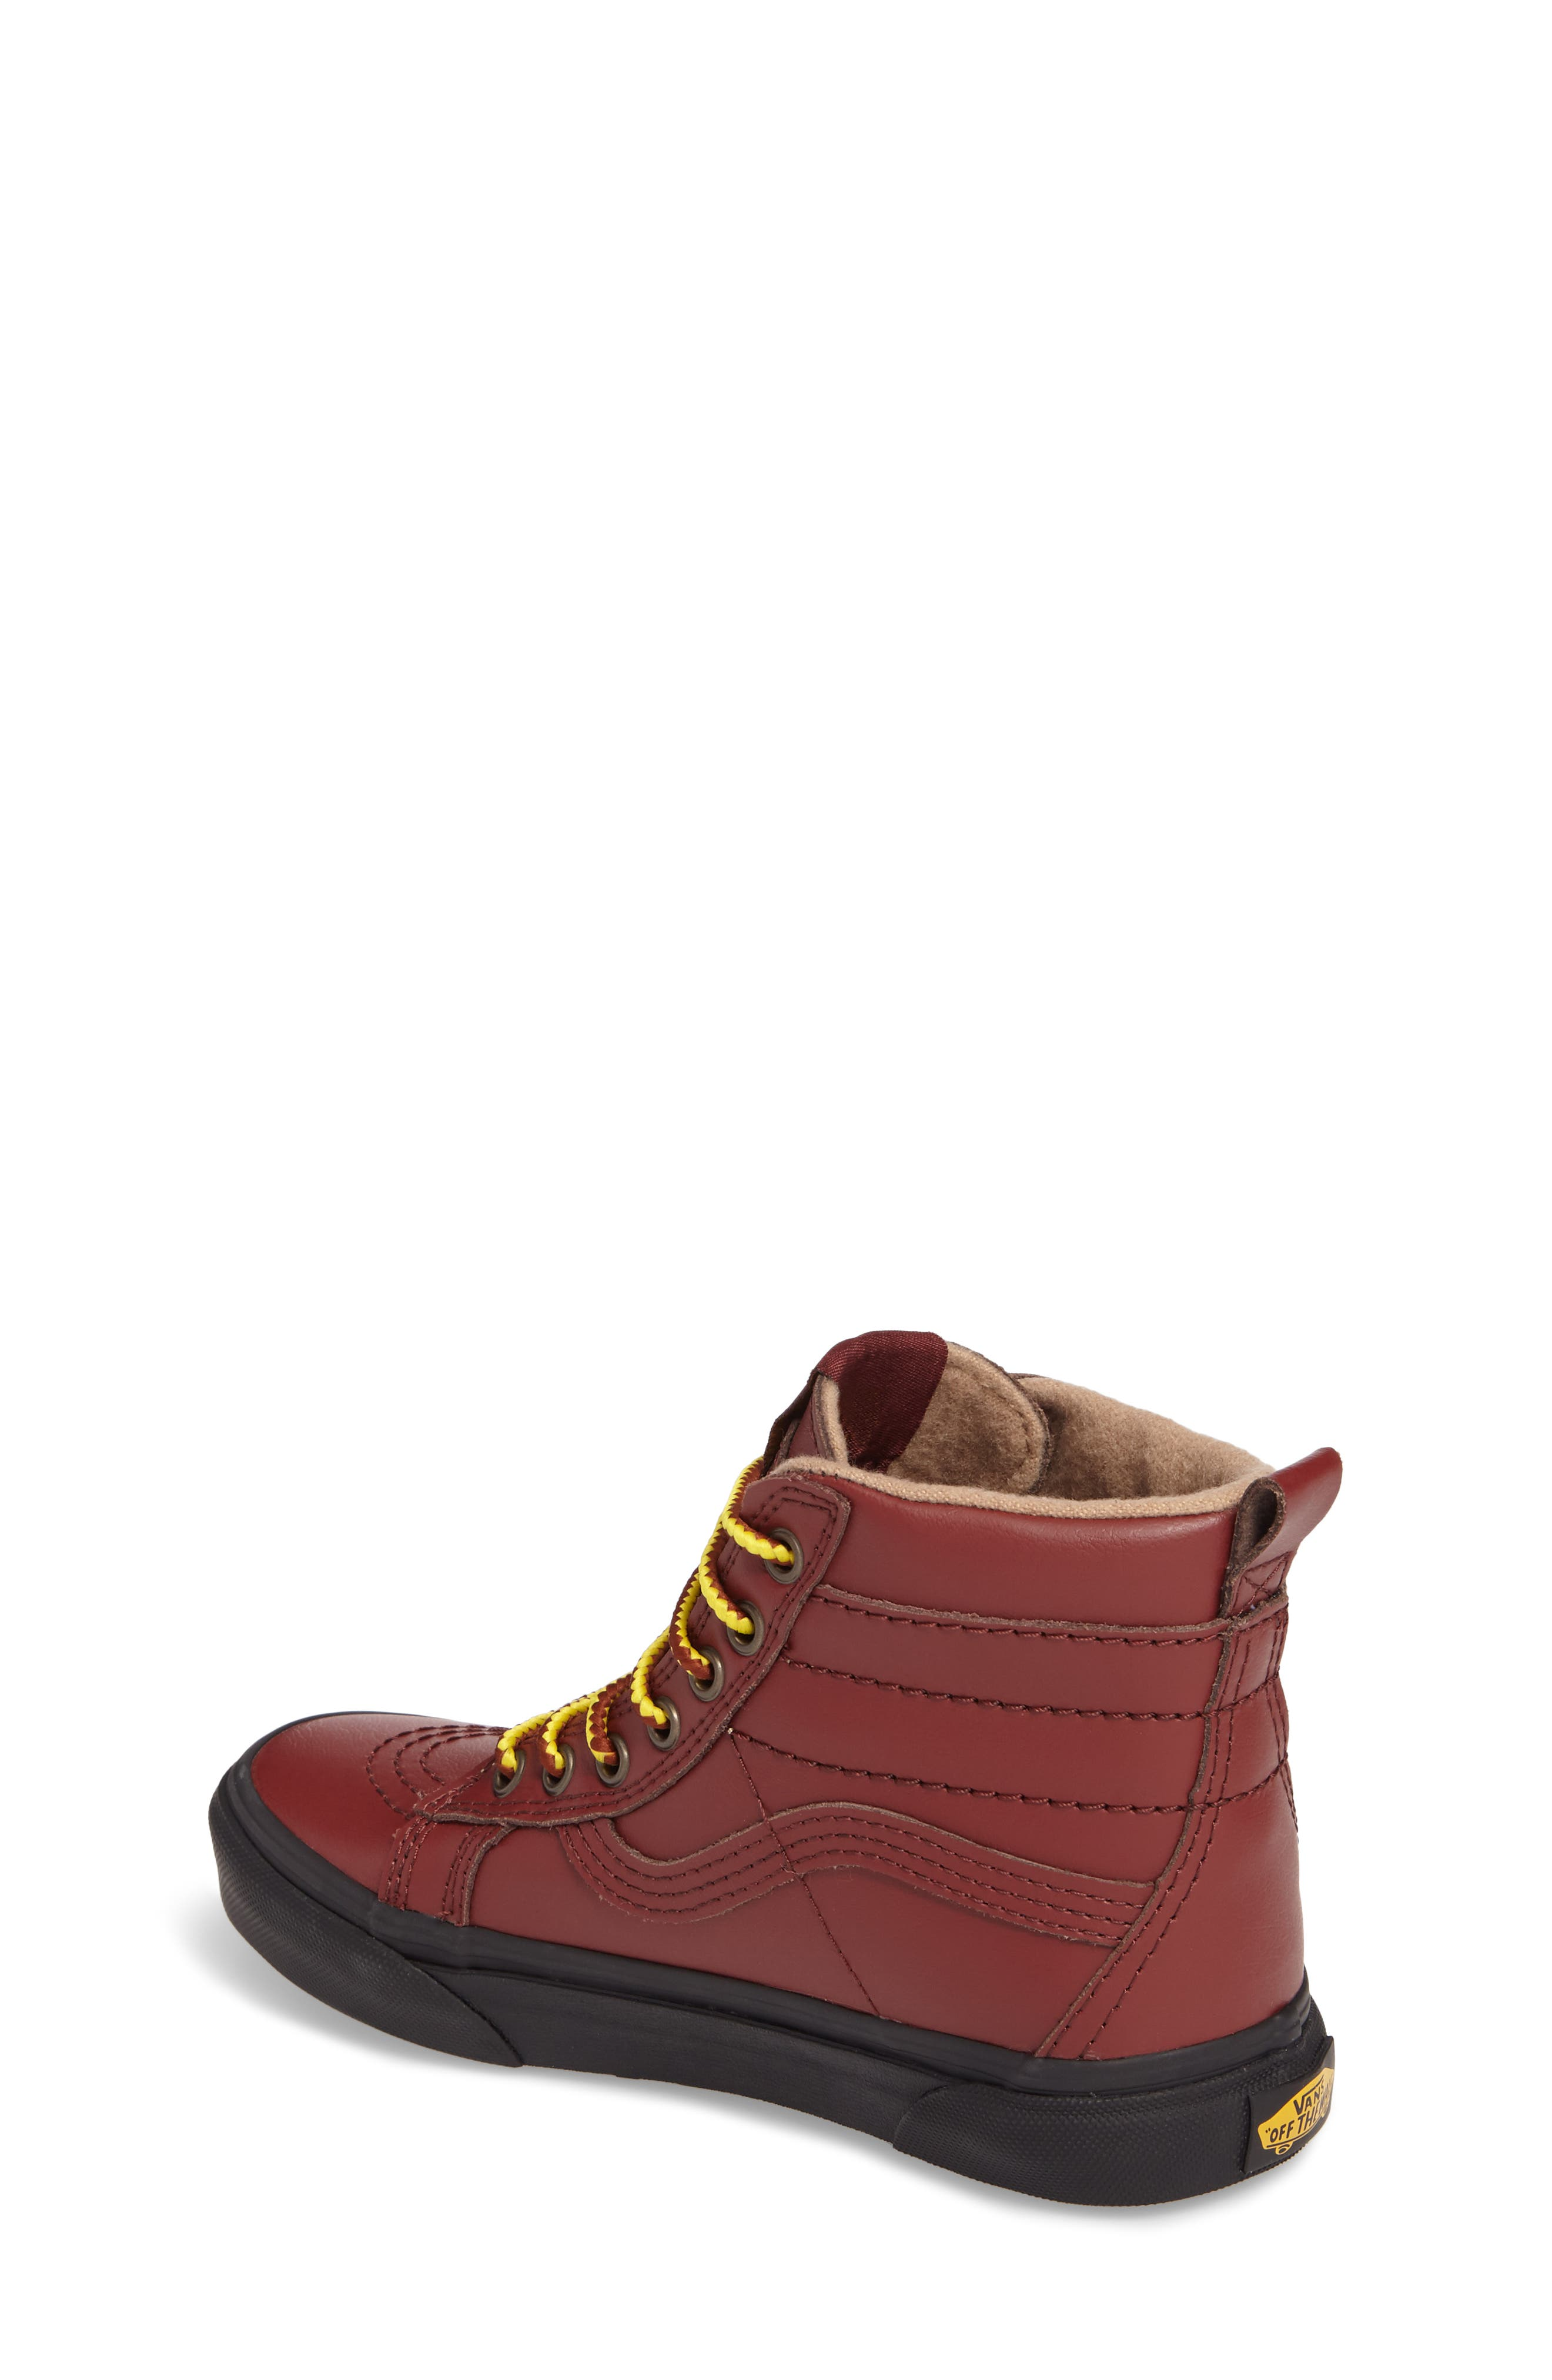 SK8-Hi Sneaker,                             Alternate thumbnail 17, color,